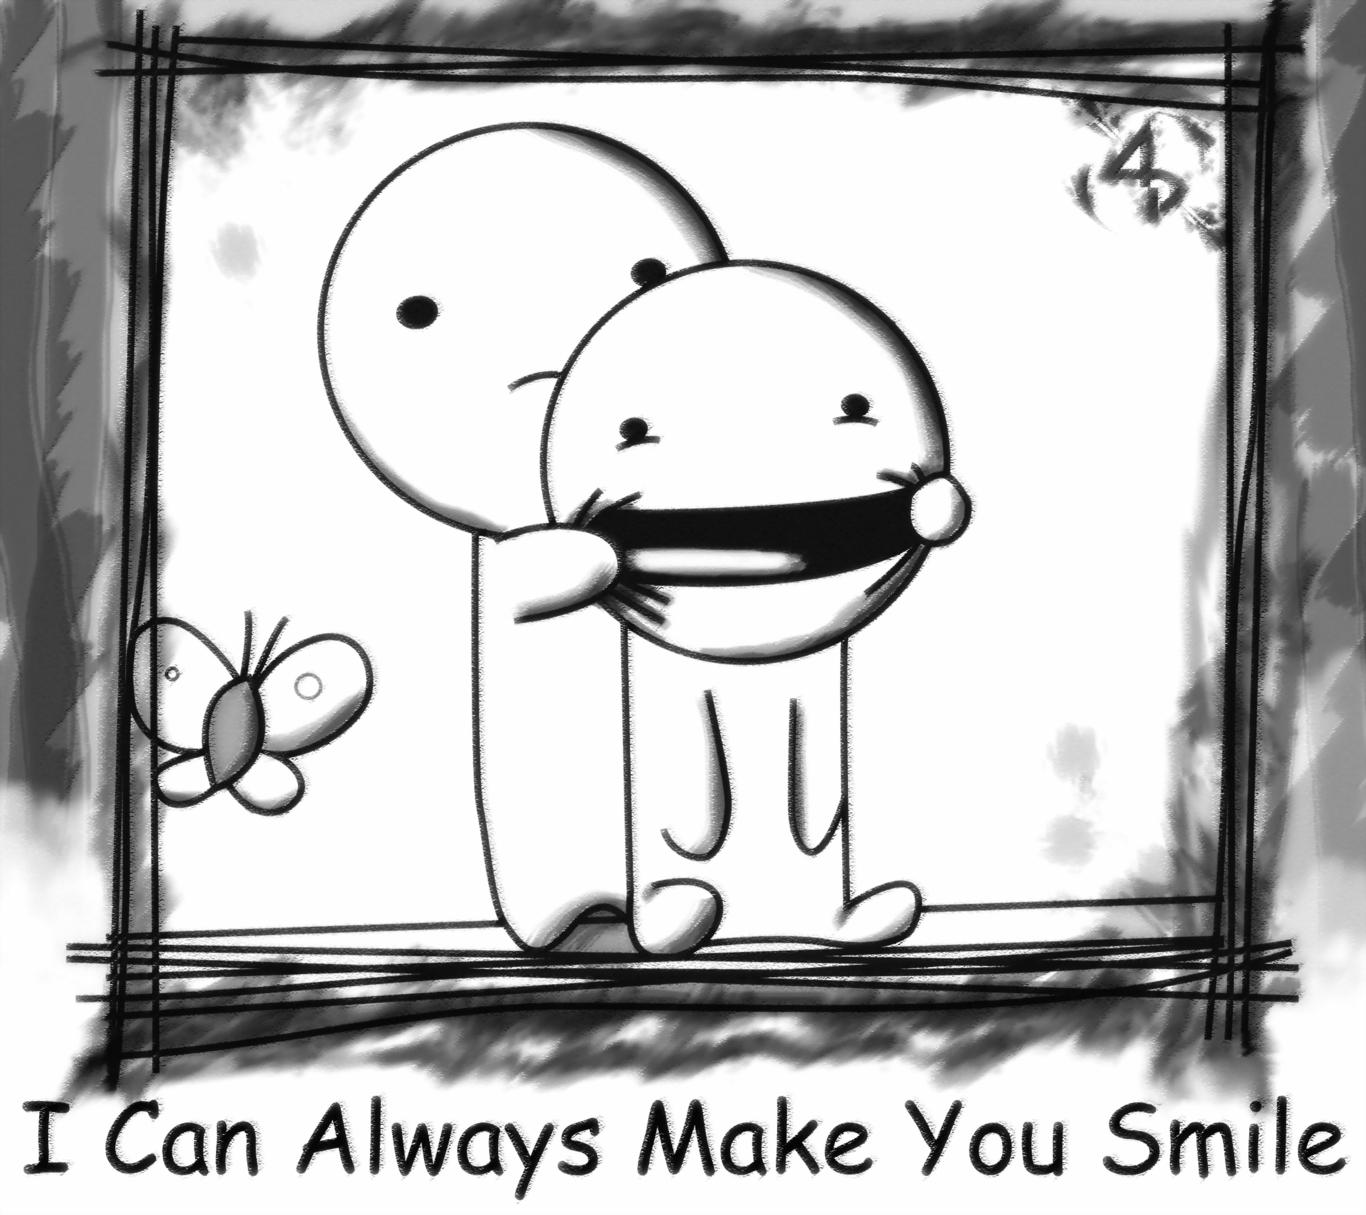 U Make Me Smile Quotes: I Can Always Make You Smile Quotes. QuotesGram